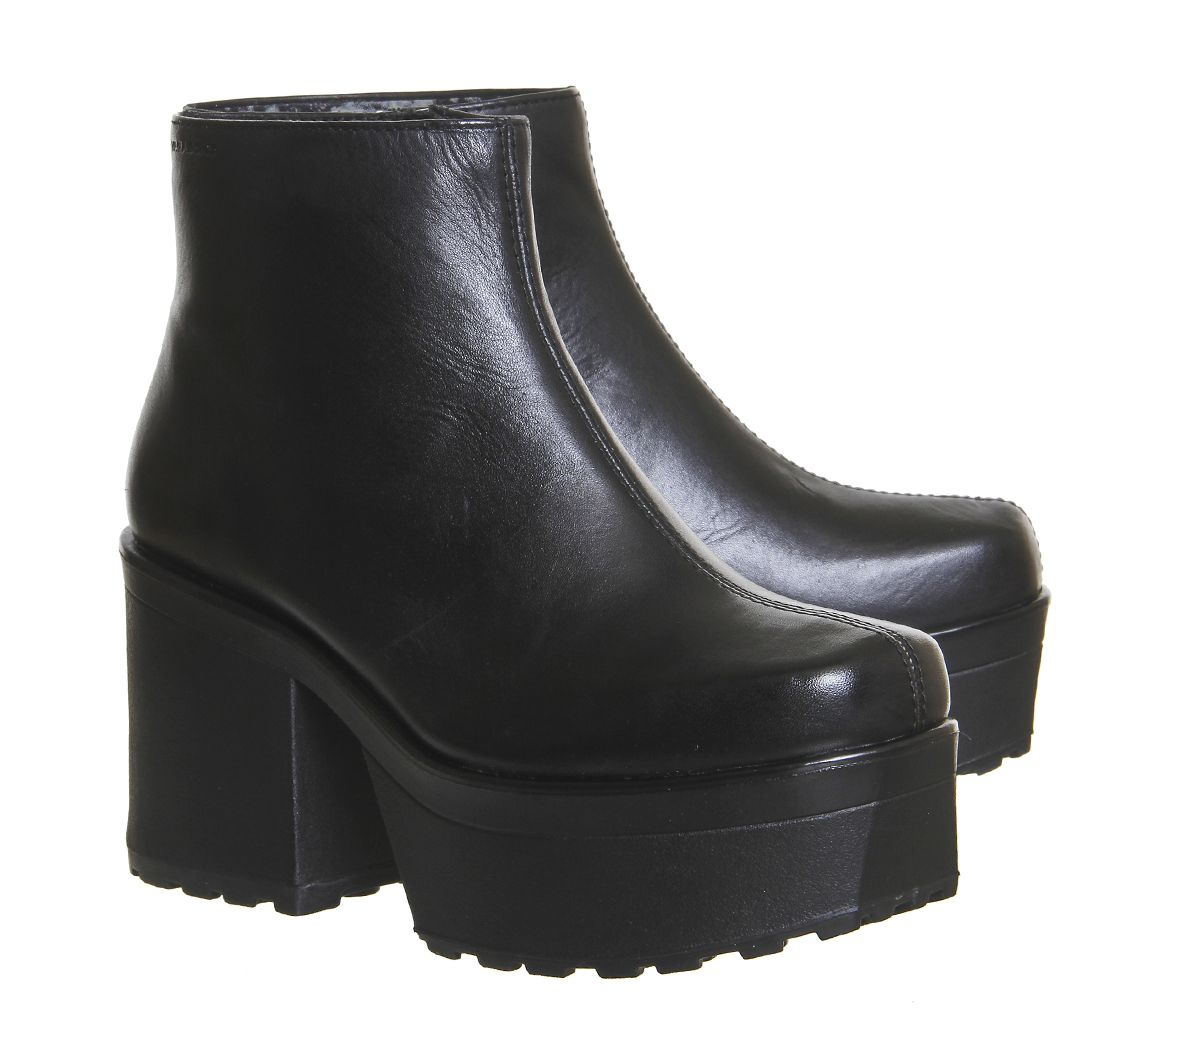 Buy Black Leather Vagabond Norah Boots from OFFICE.co.uk.